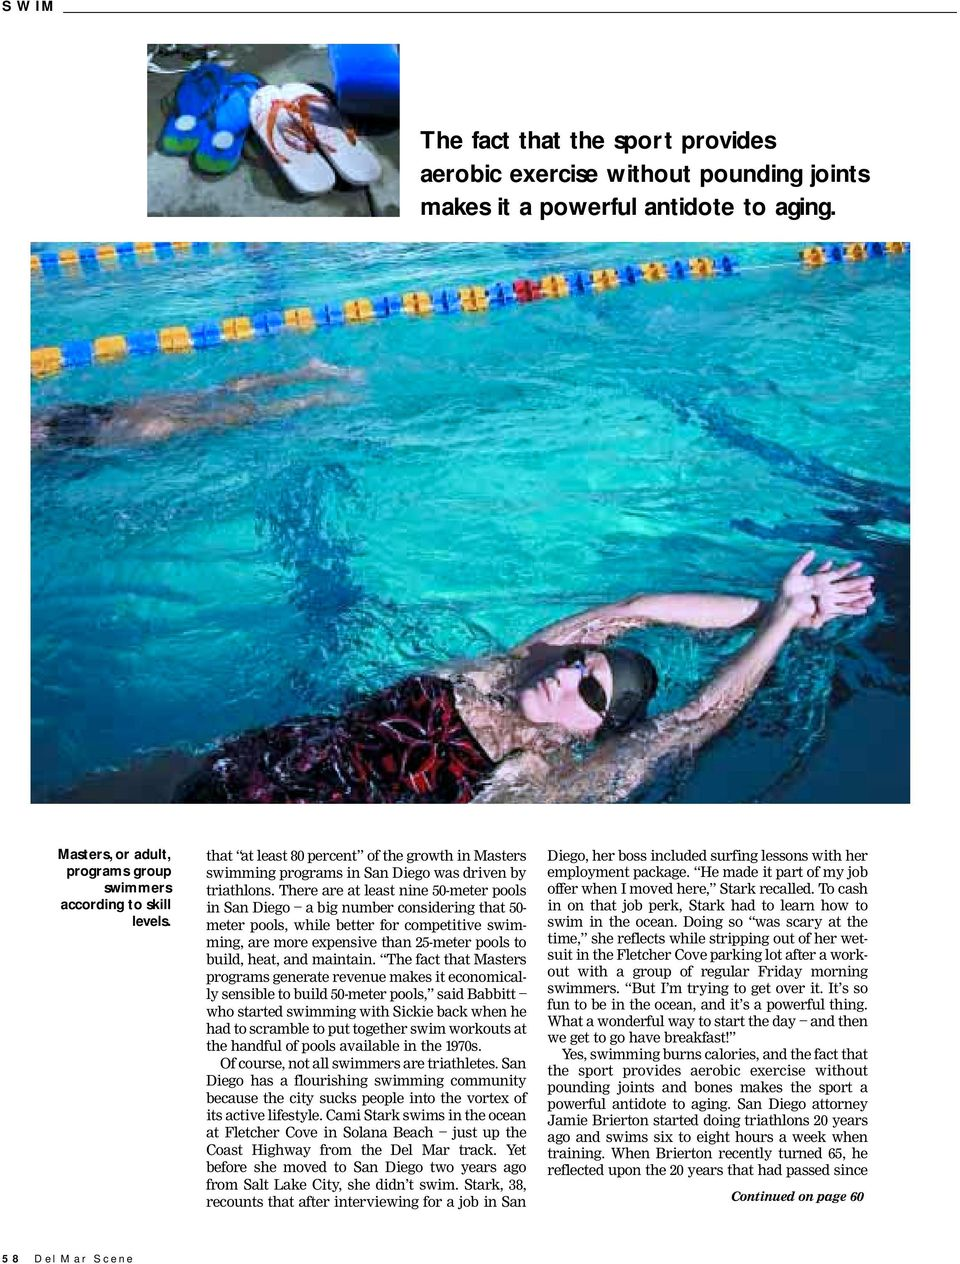 There are at least nine 50-meter pools in San Diego a big number considering that 50- meter pools, while better for competitive swimming, are more expensive than 25-meter pools to build, heat, and